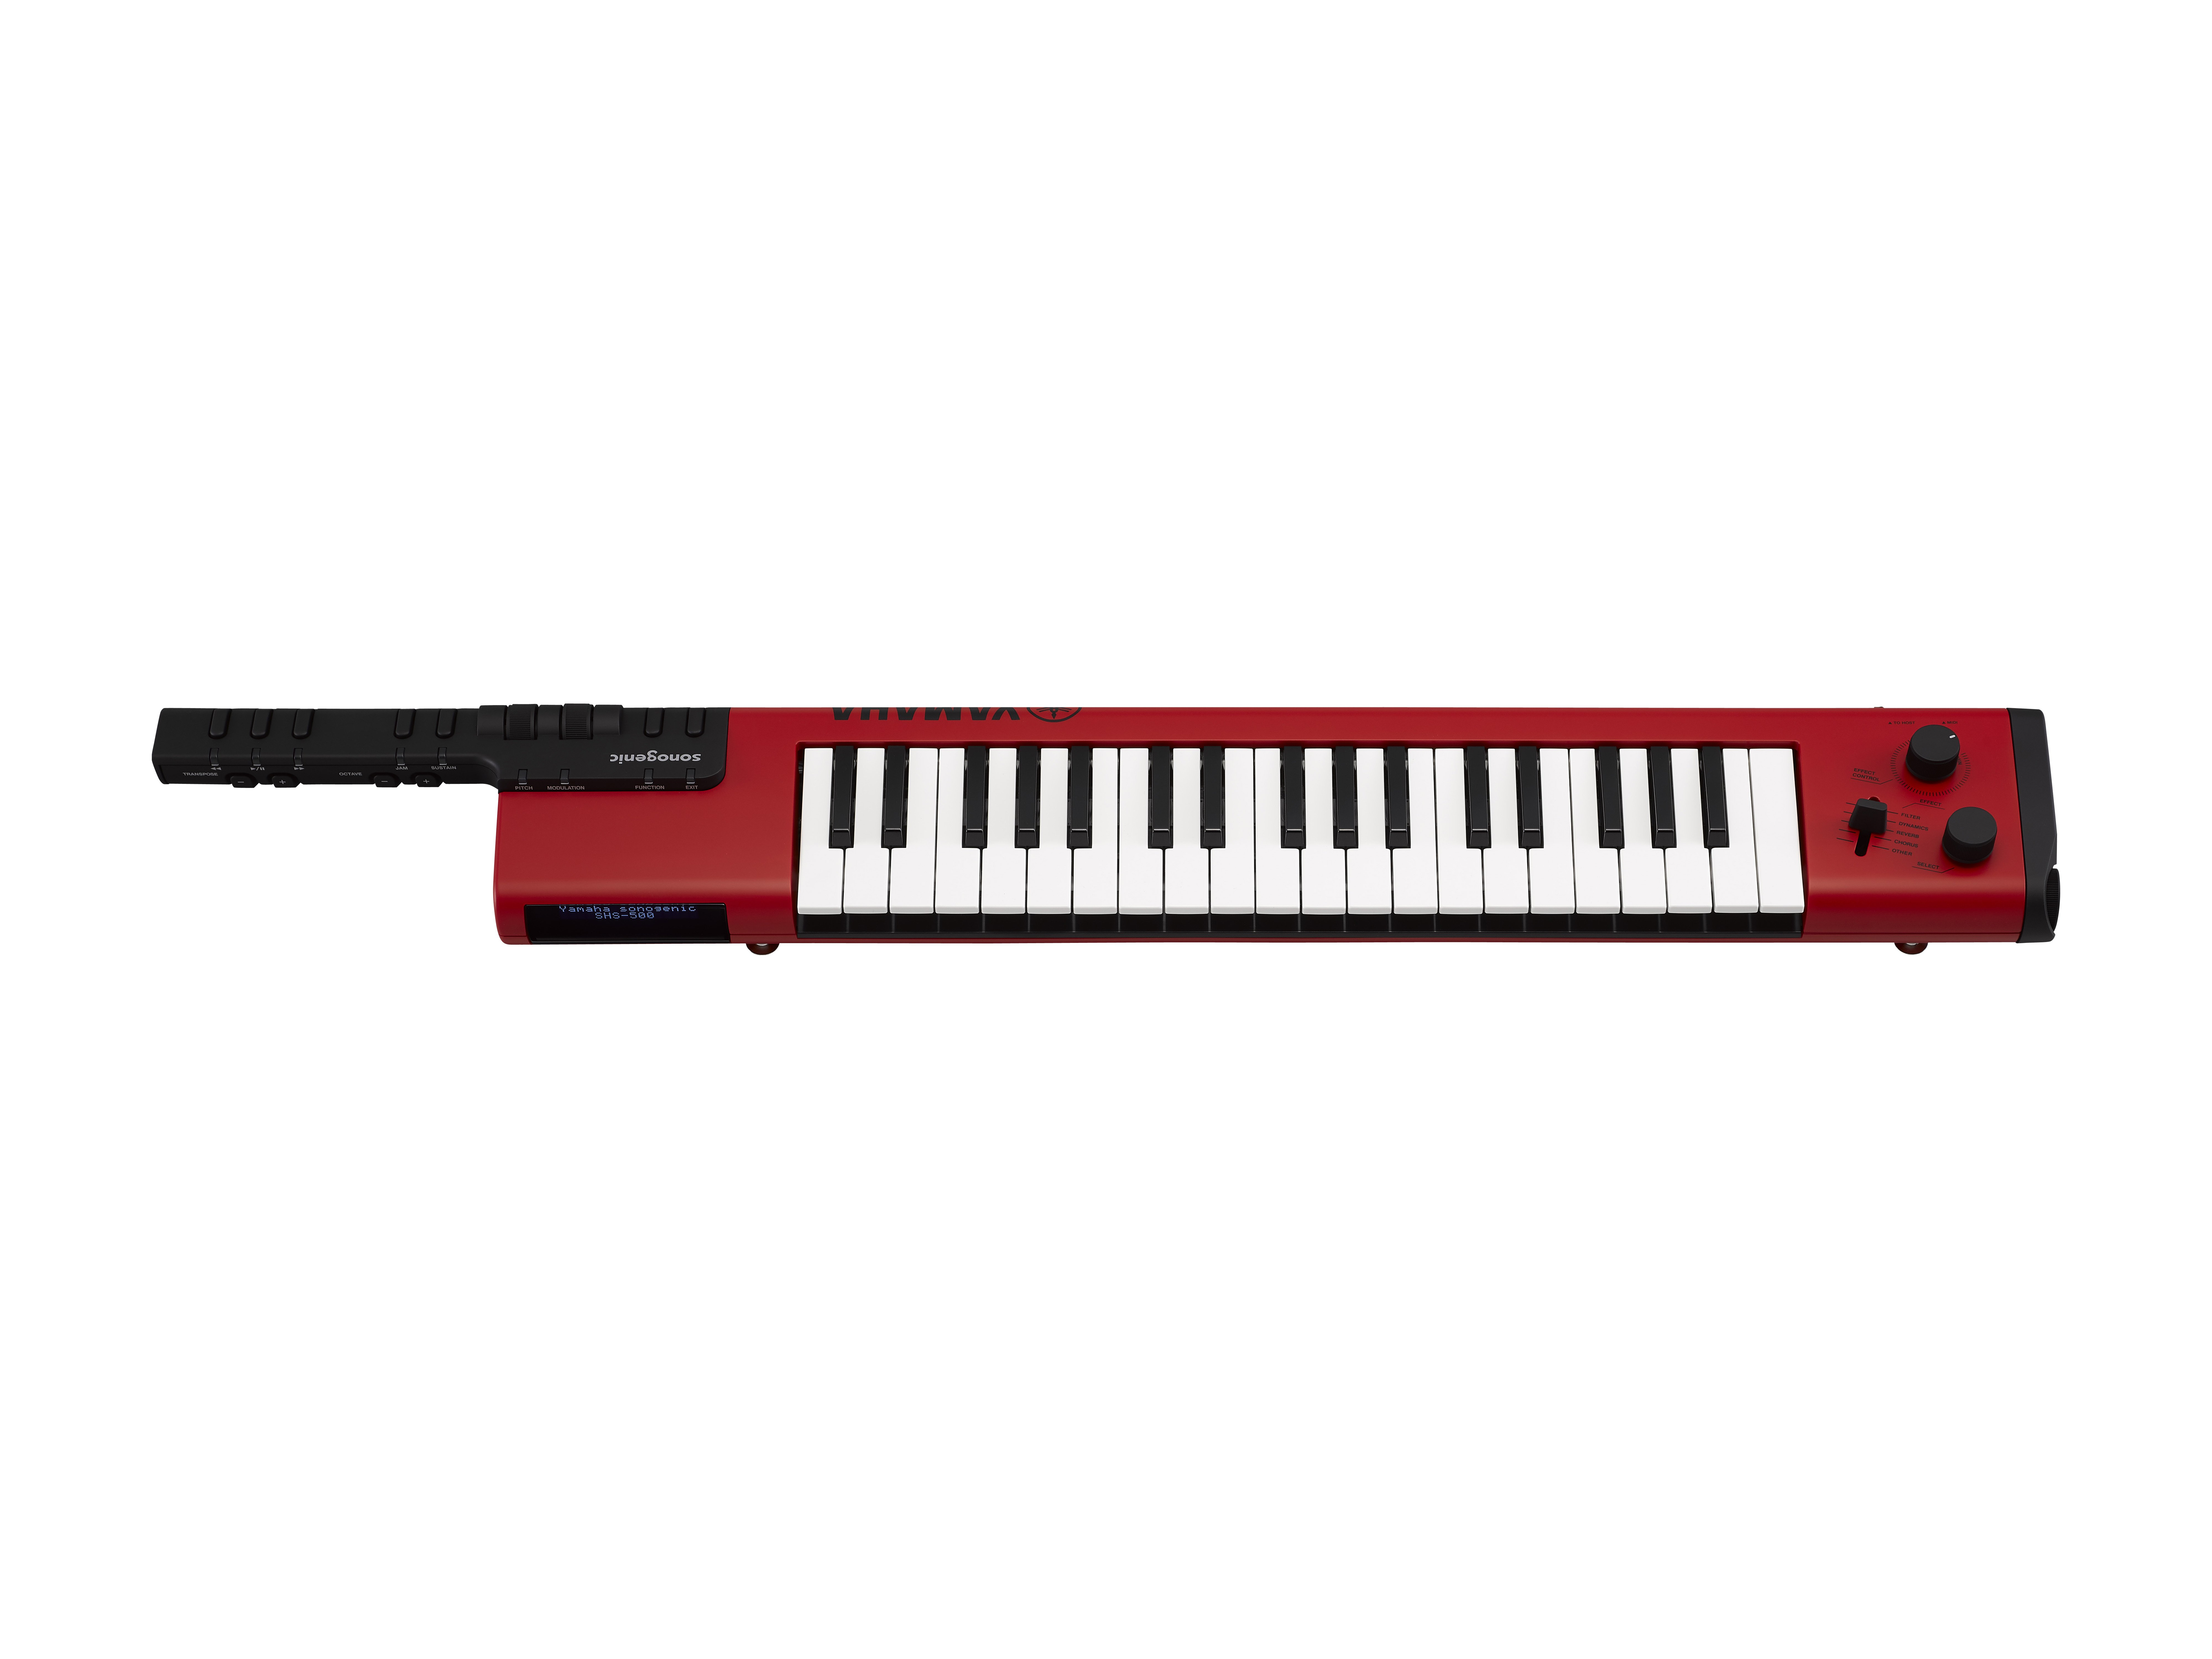 SHS-500 - Overview - Sonogenic - Specialty Musical